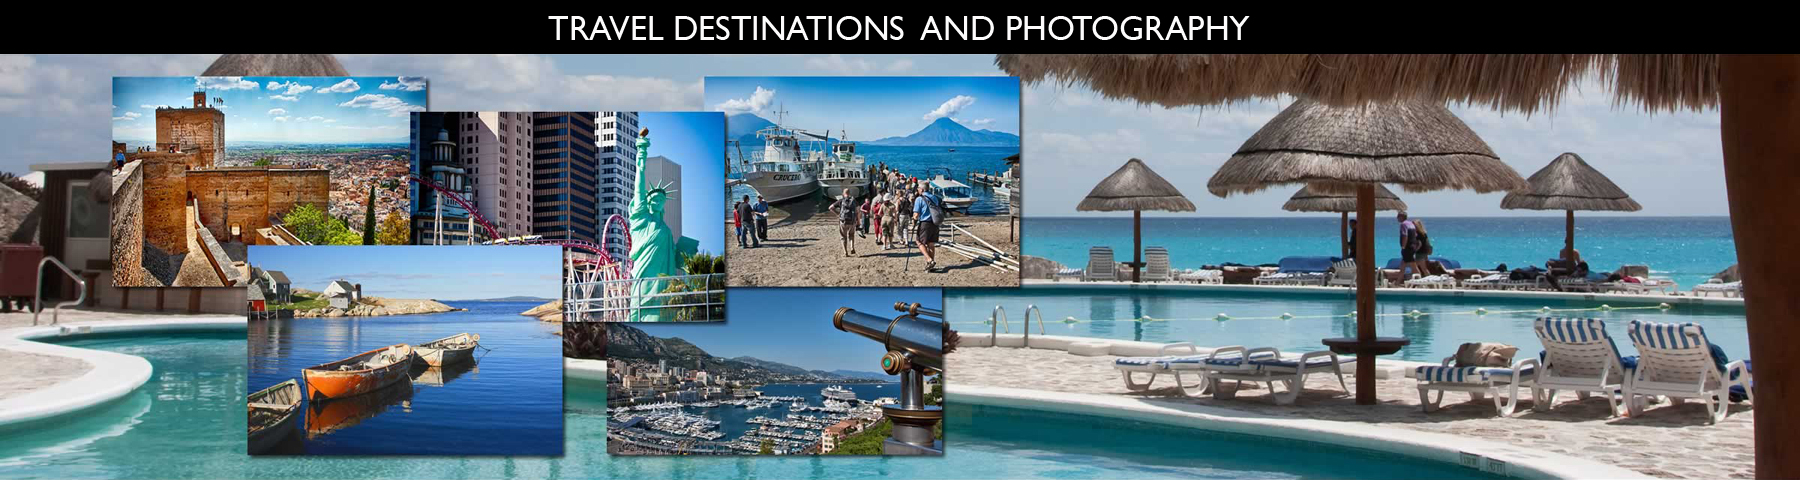 Travelways - Travel Destinations and Photography